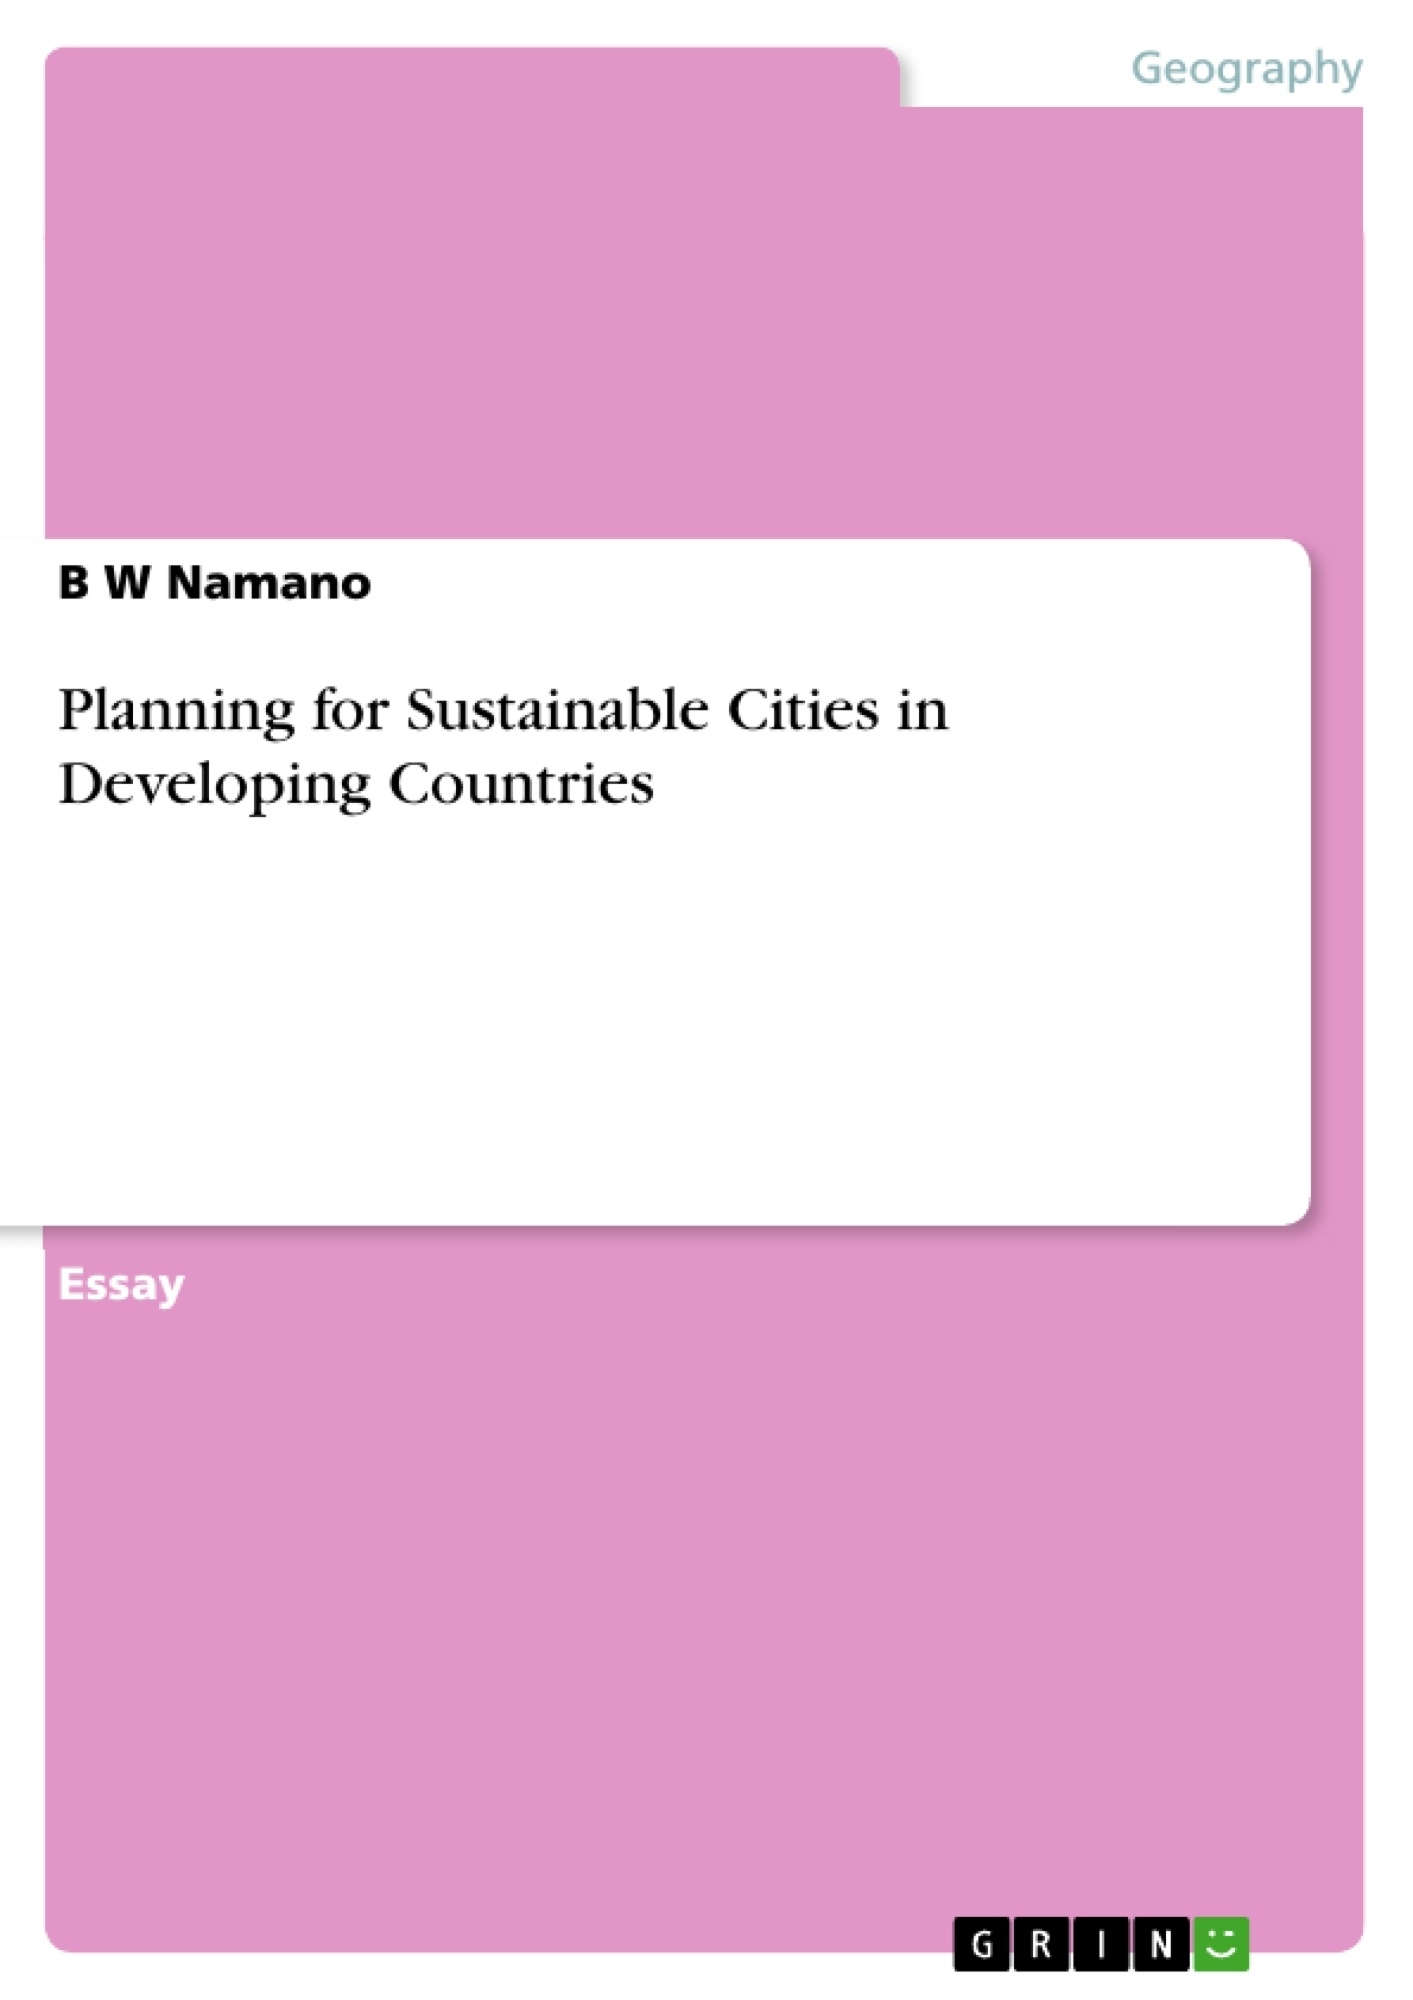 Title: Planning for Sustainable Cities in Developing Countries